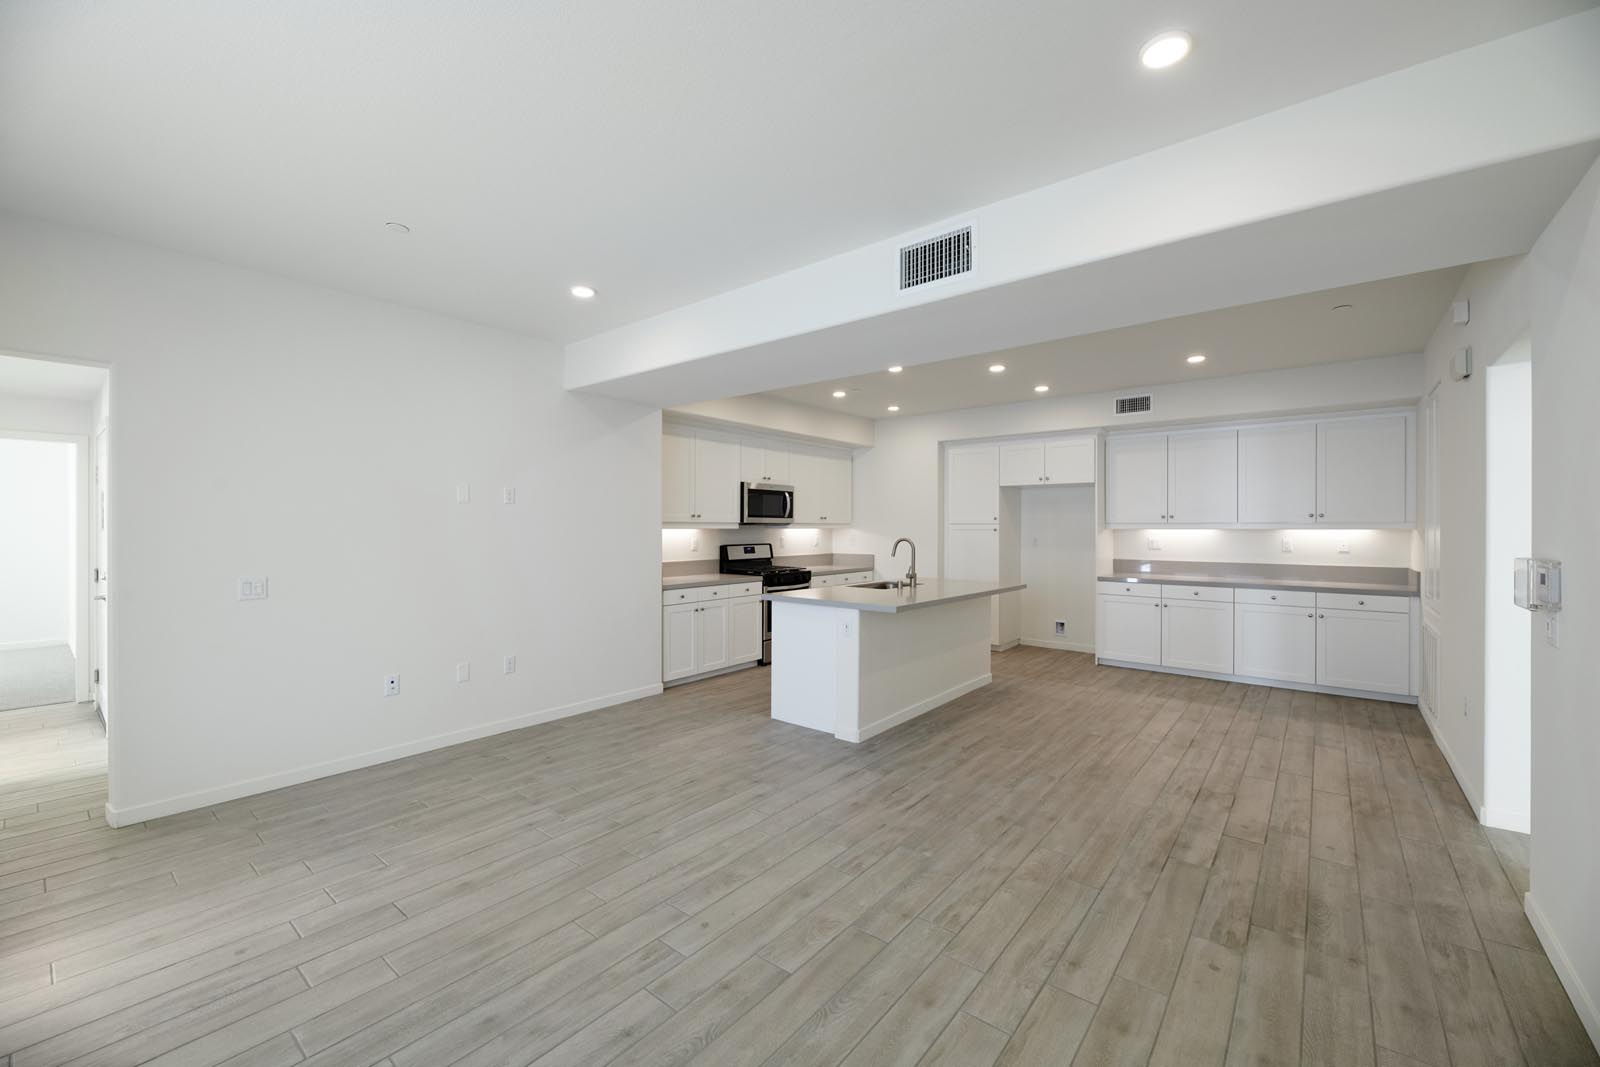 Great Room to Kitchen   Residence 2   Aspire   New Homes in Rancho Cucamonga, CA   Van Daele Homes